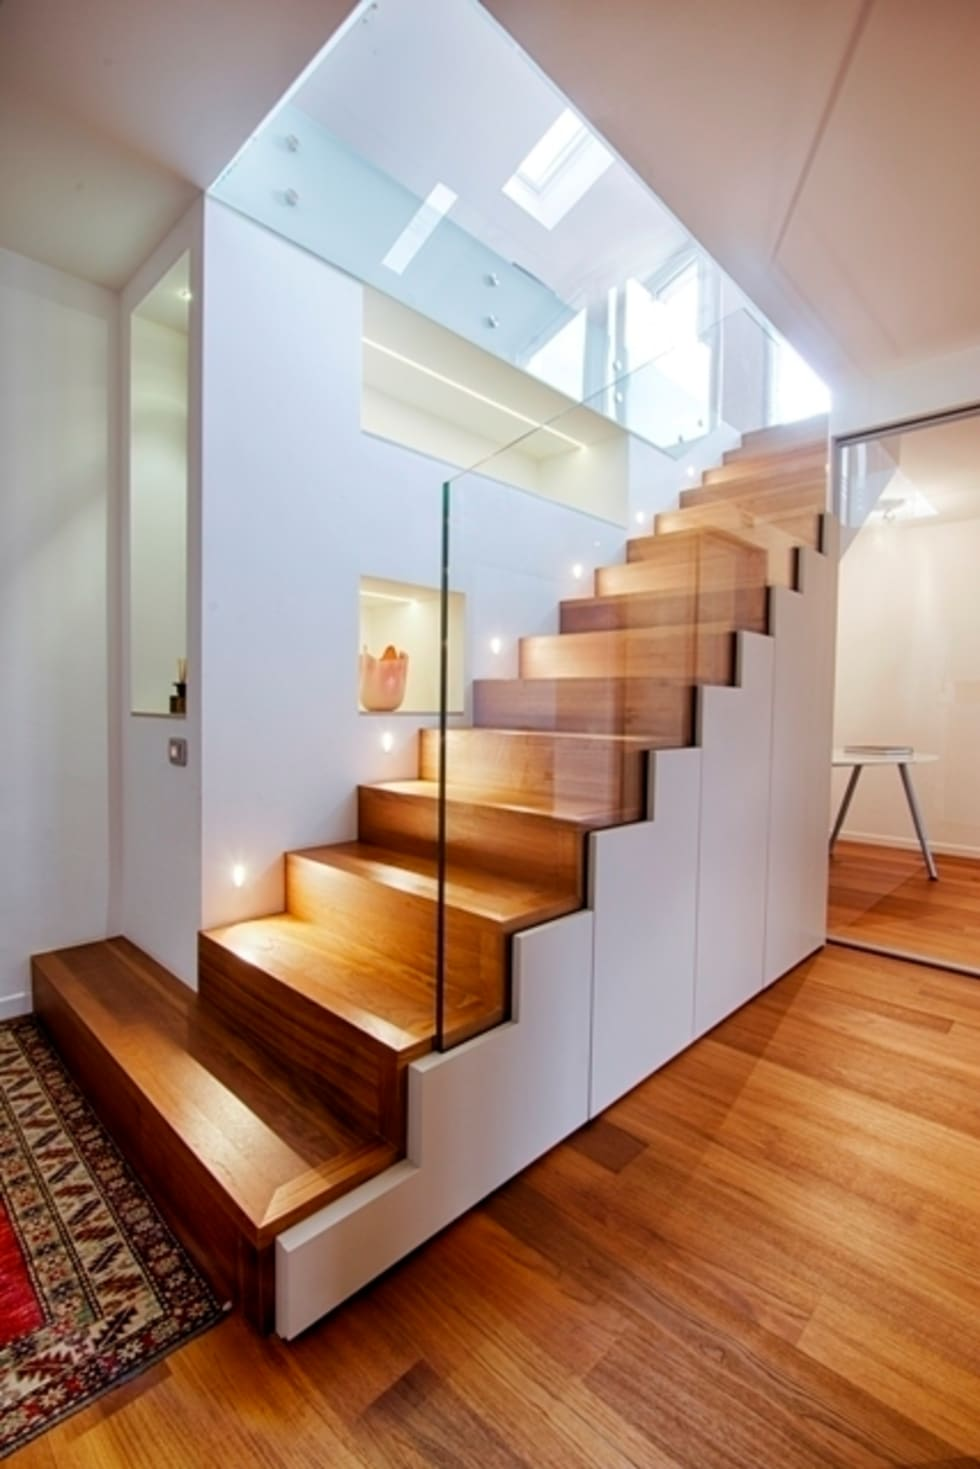 6 amazing ways to jazz up your stairway!